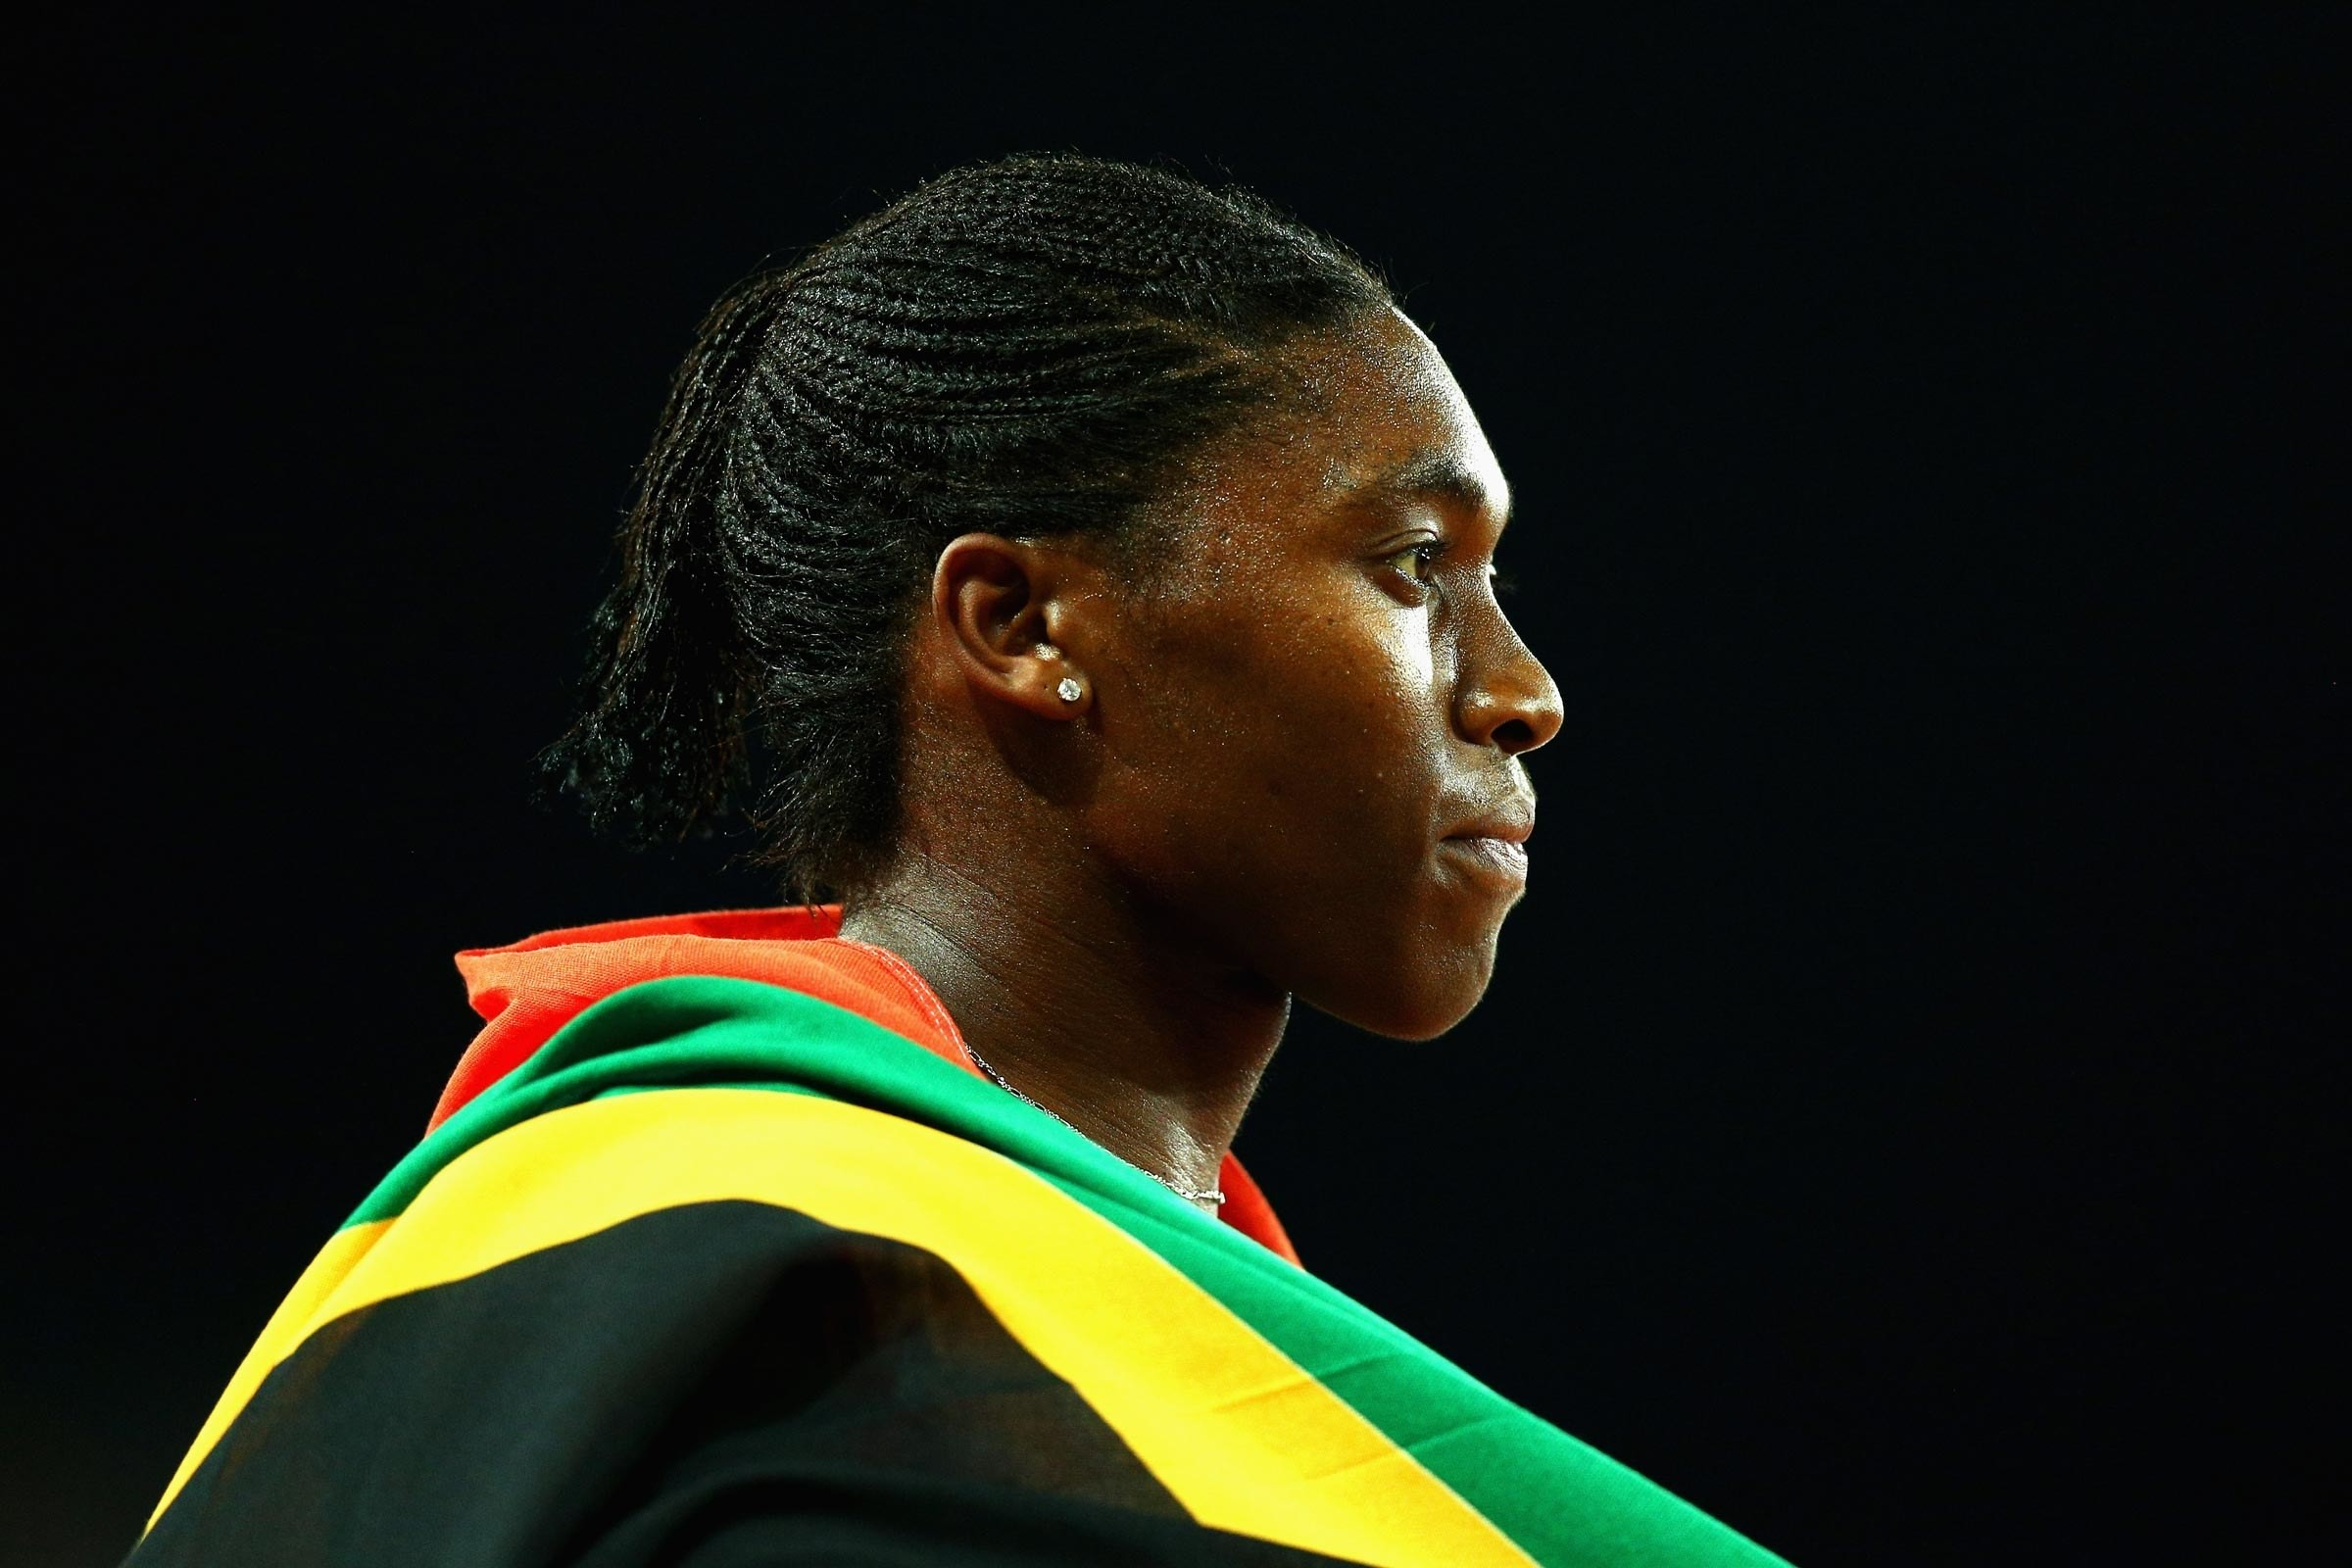 A Swiss court overturned its own ruling, disqualifying Caster Semenya from the upcoming World Championship 800m in Doha